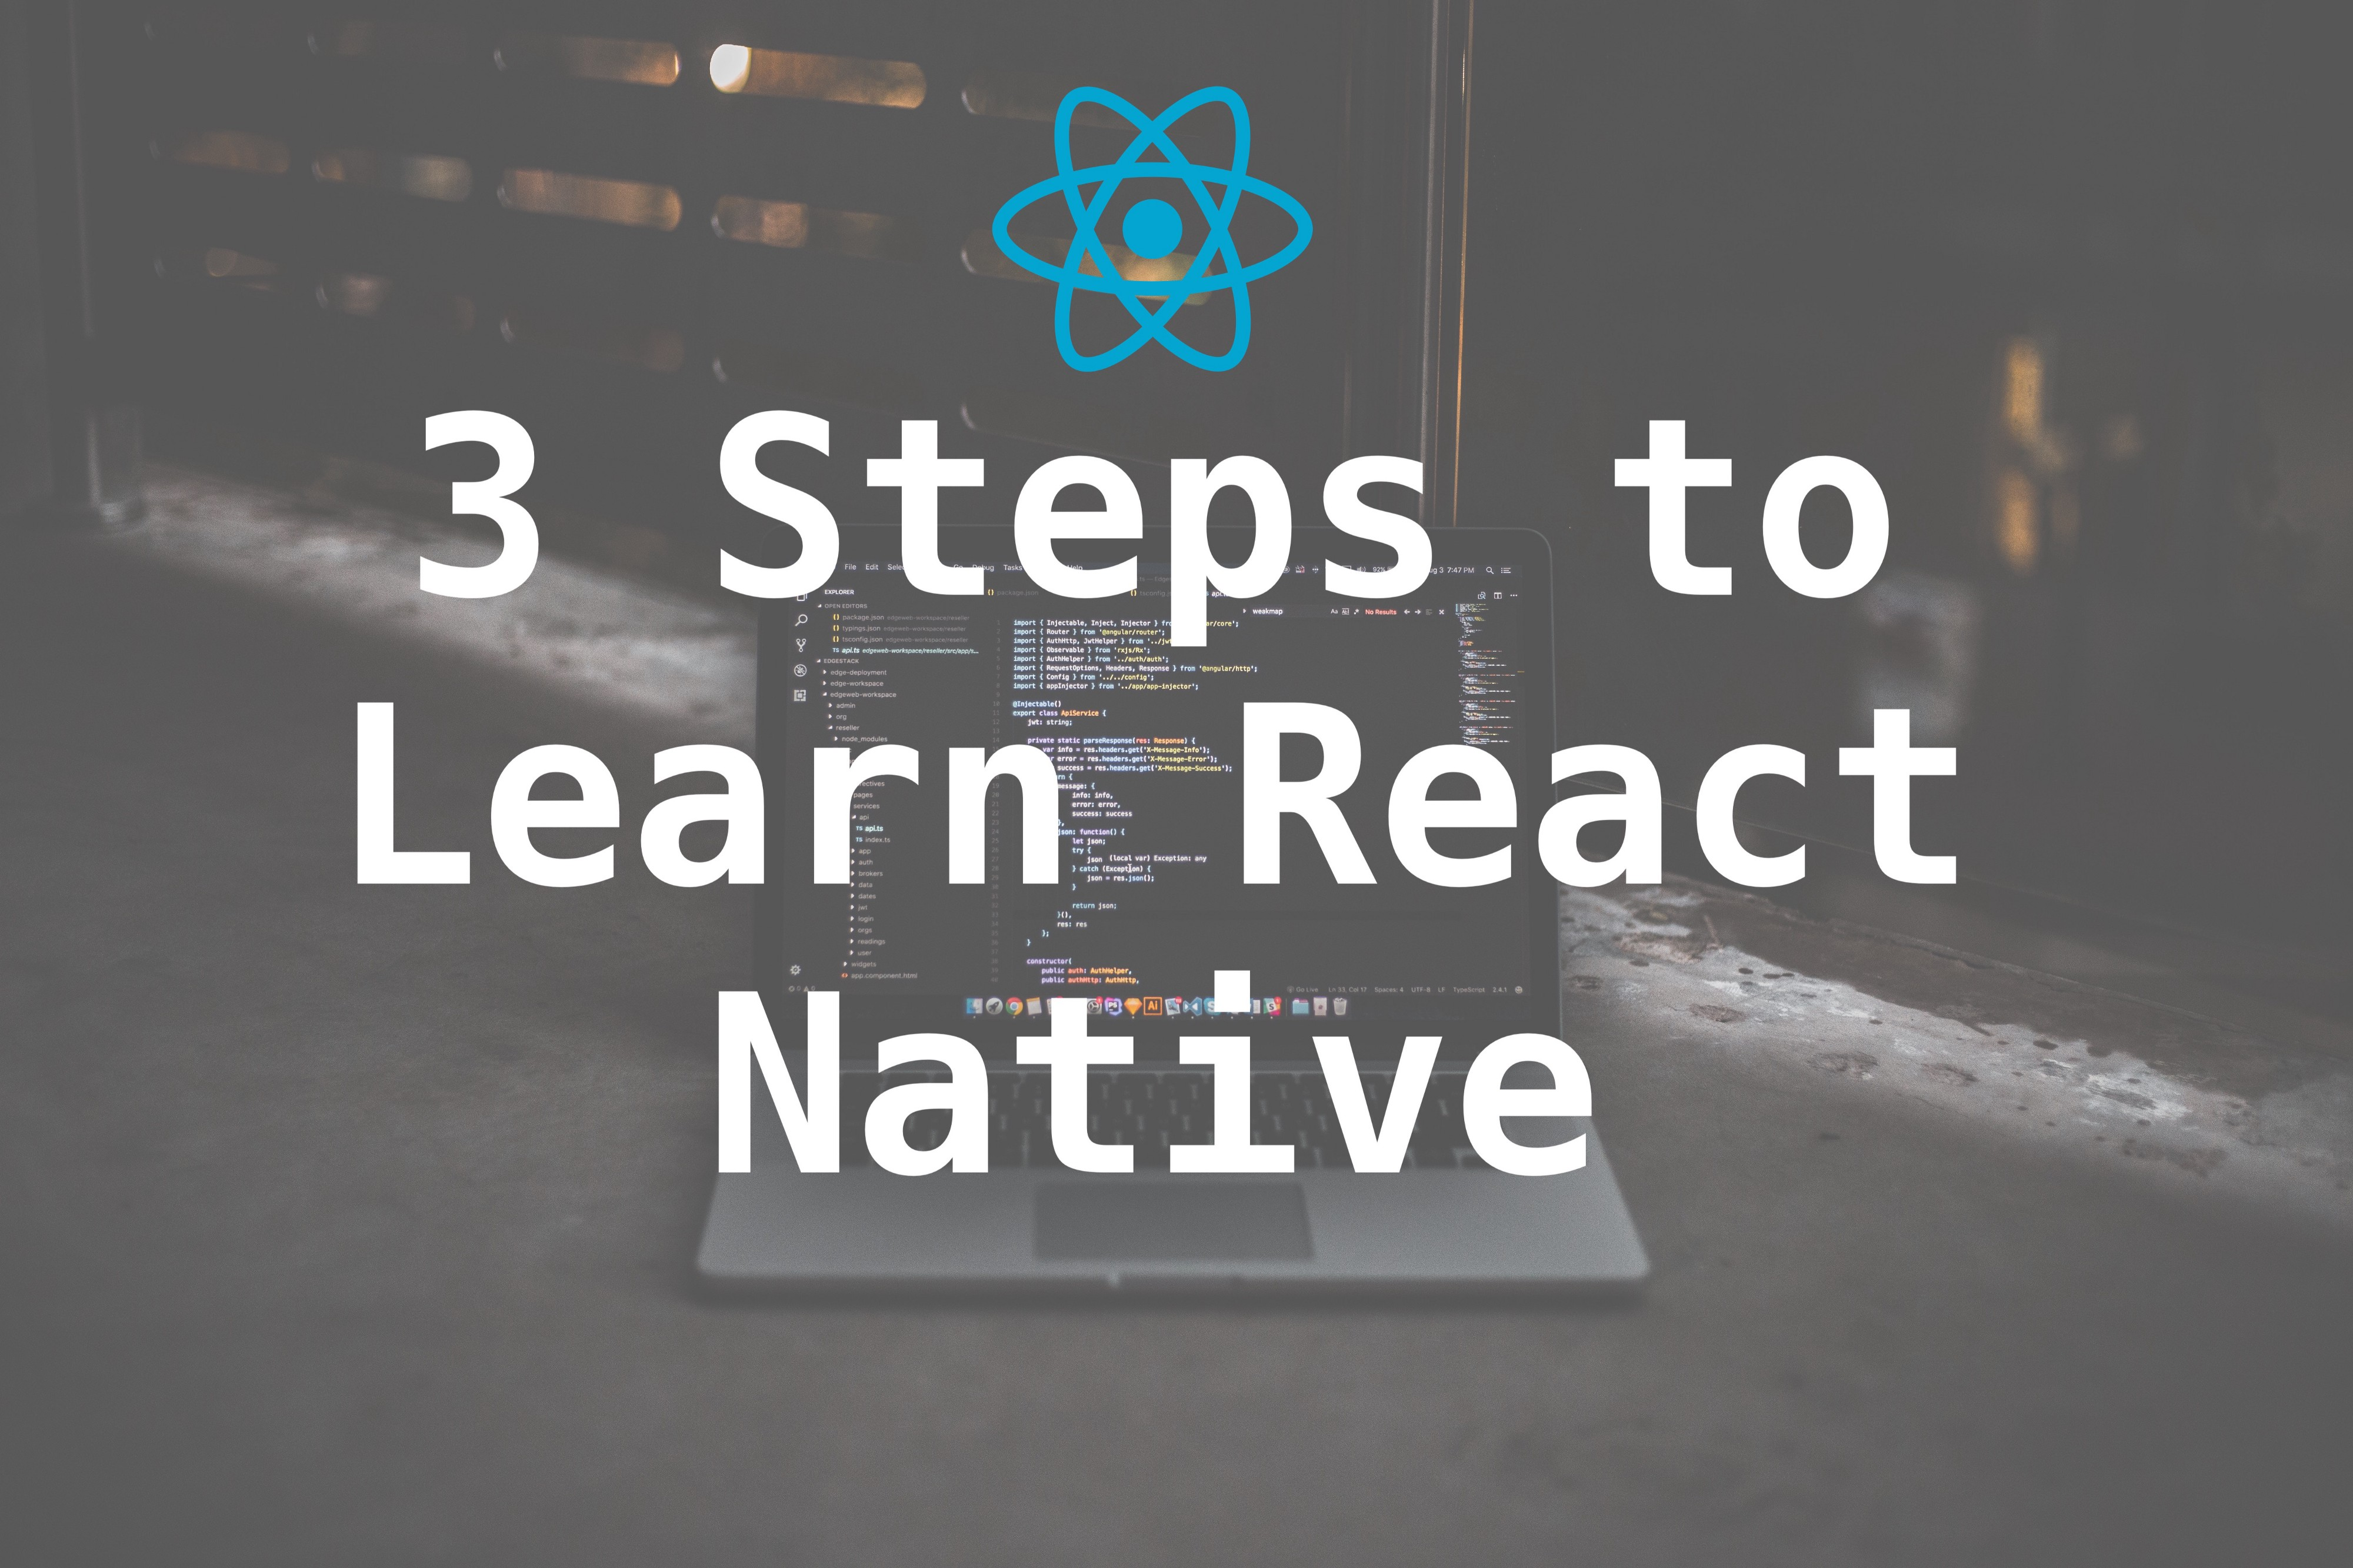 3 Steps to Learn React Native in 2019 - The Startup - Medium